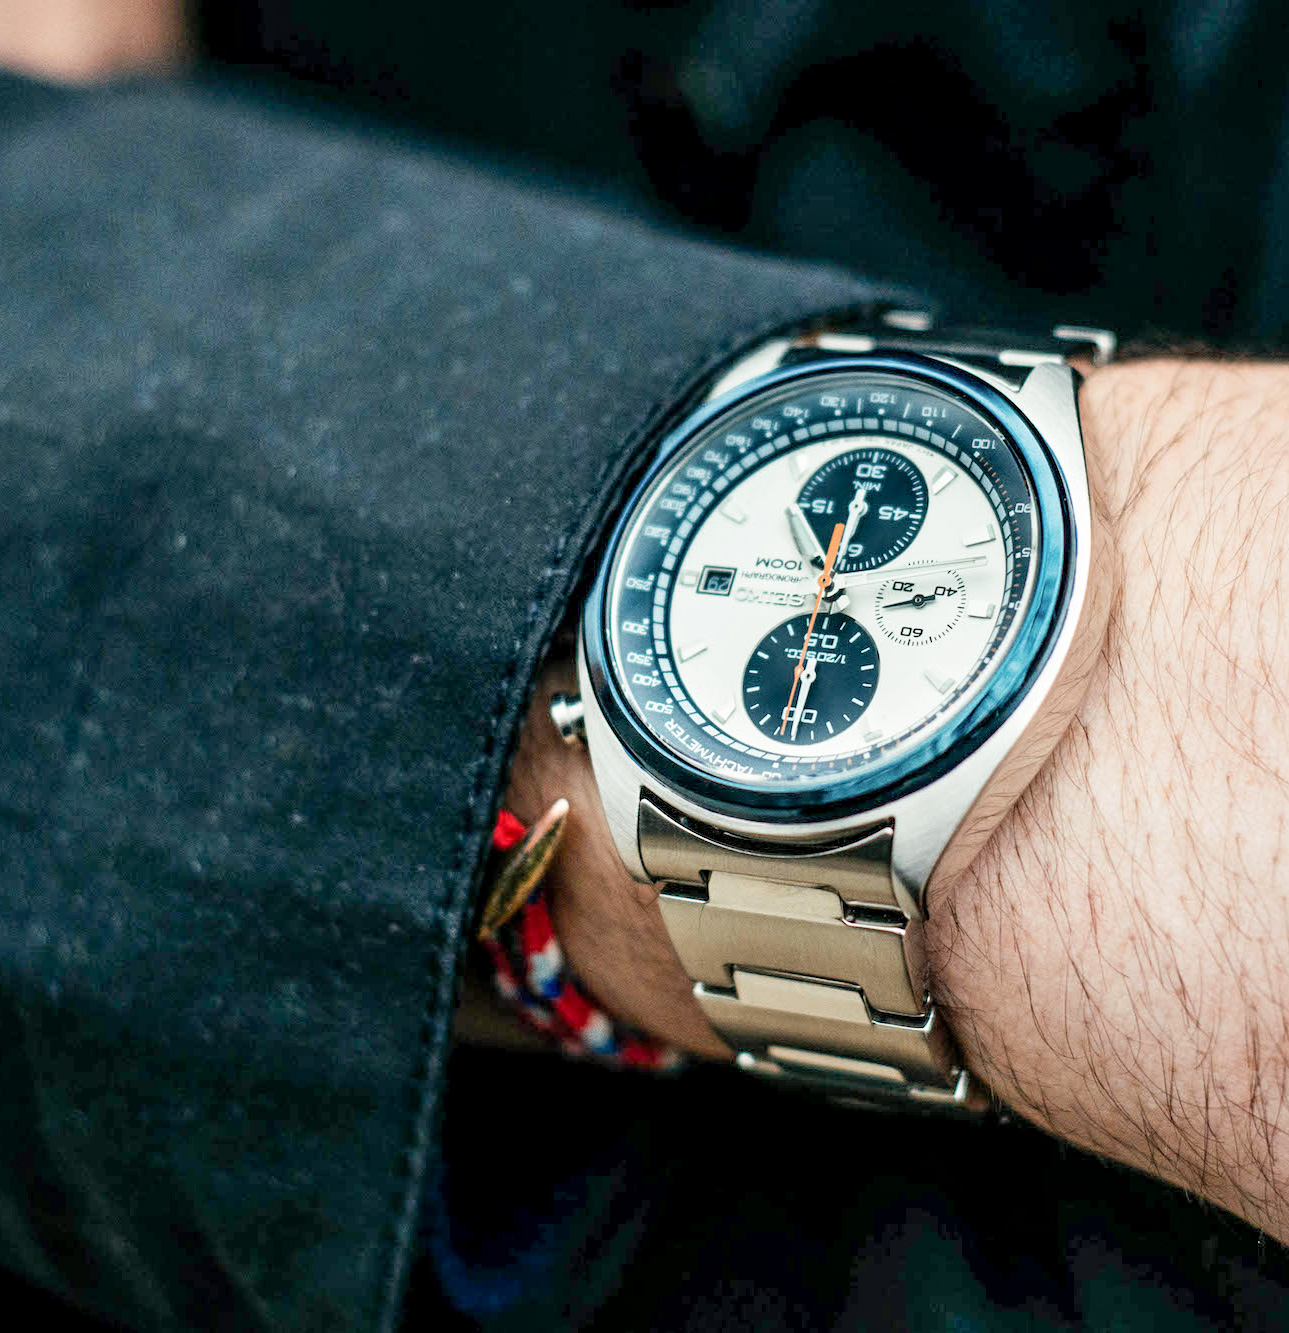 Seiko watch - men's spring outfit inspiration